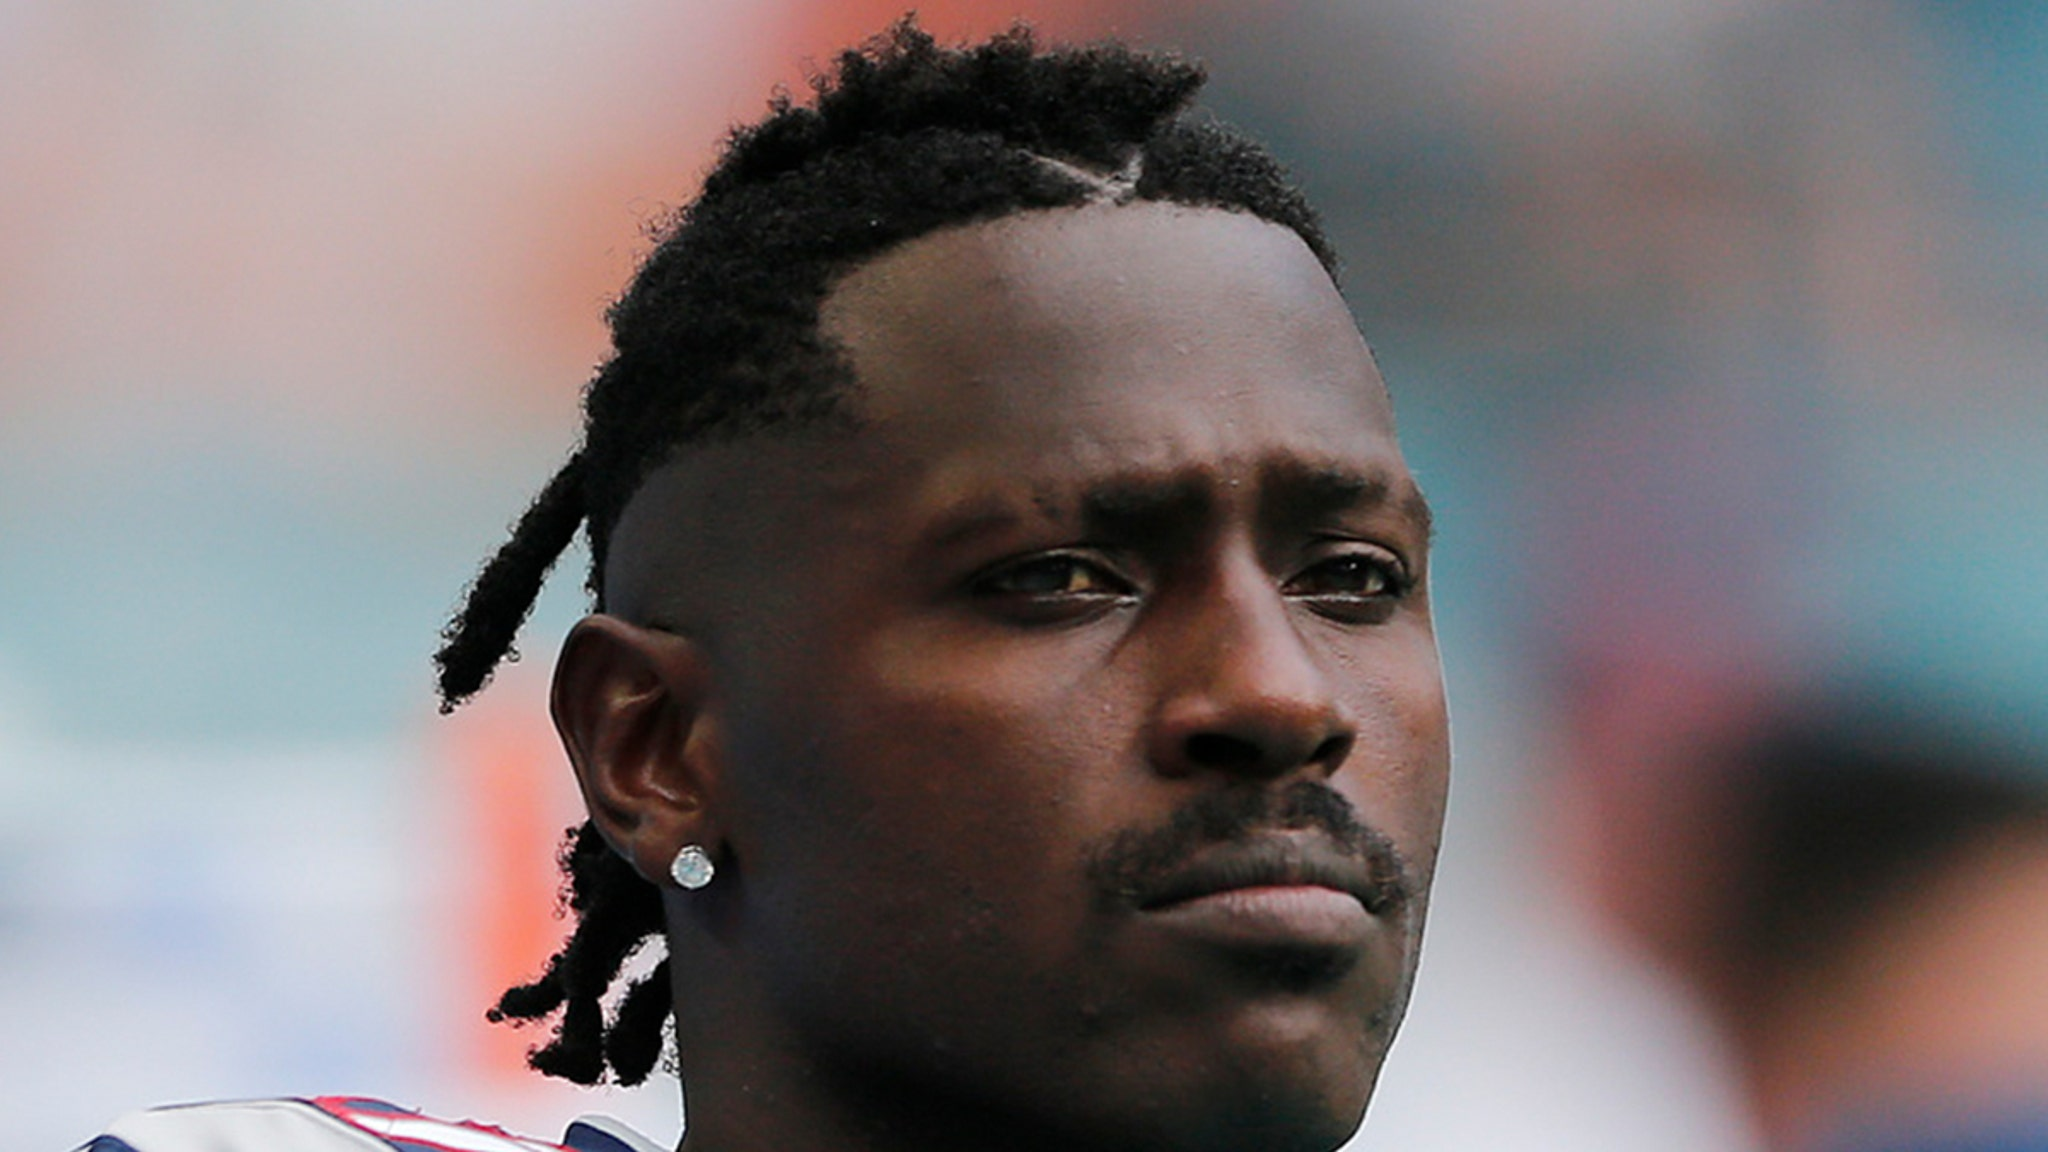 Antonio Brown Backtracks On Quitting NFL, 'I'm Just Very Frustrated Right Now'